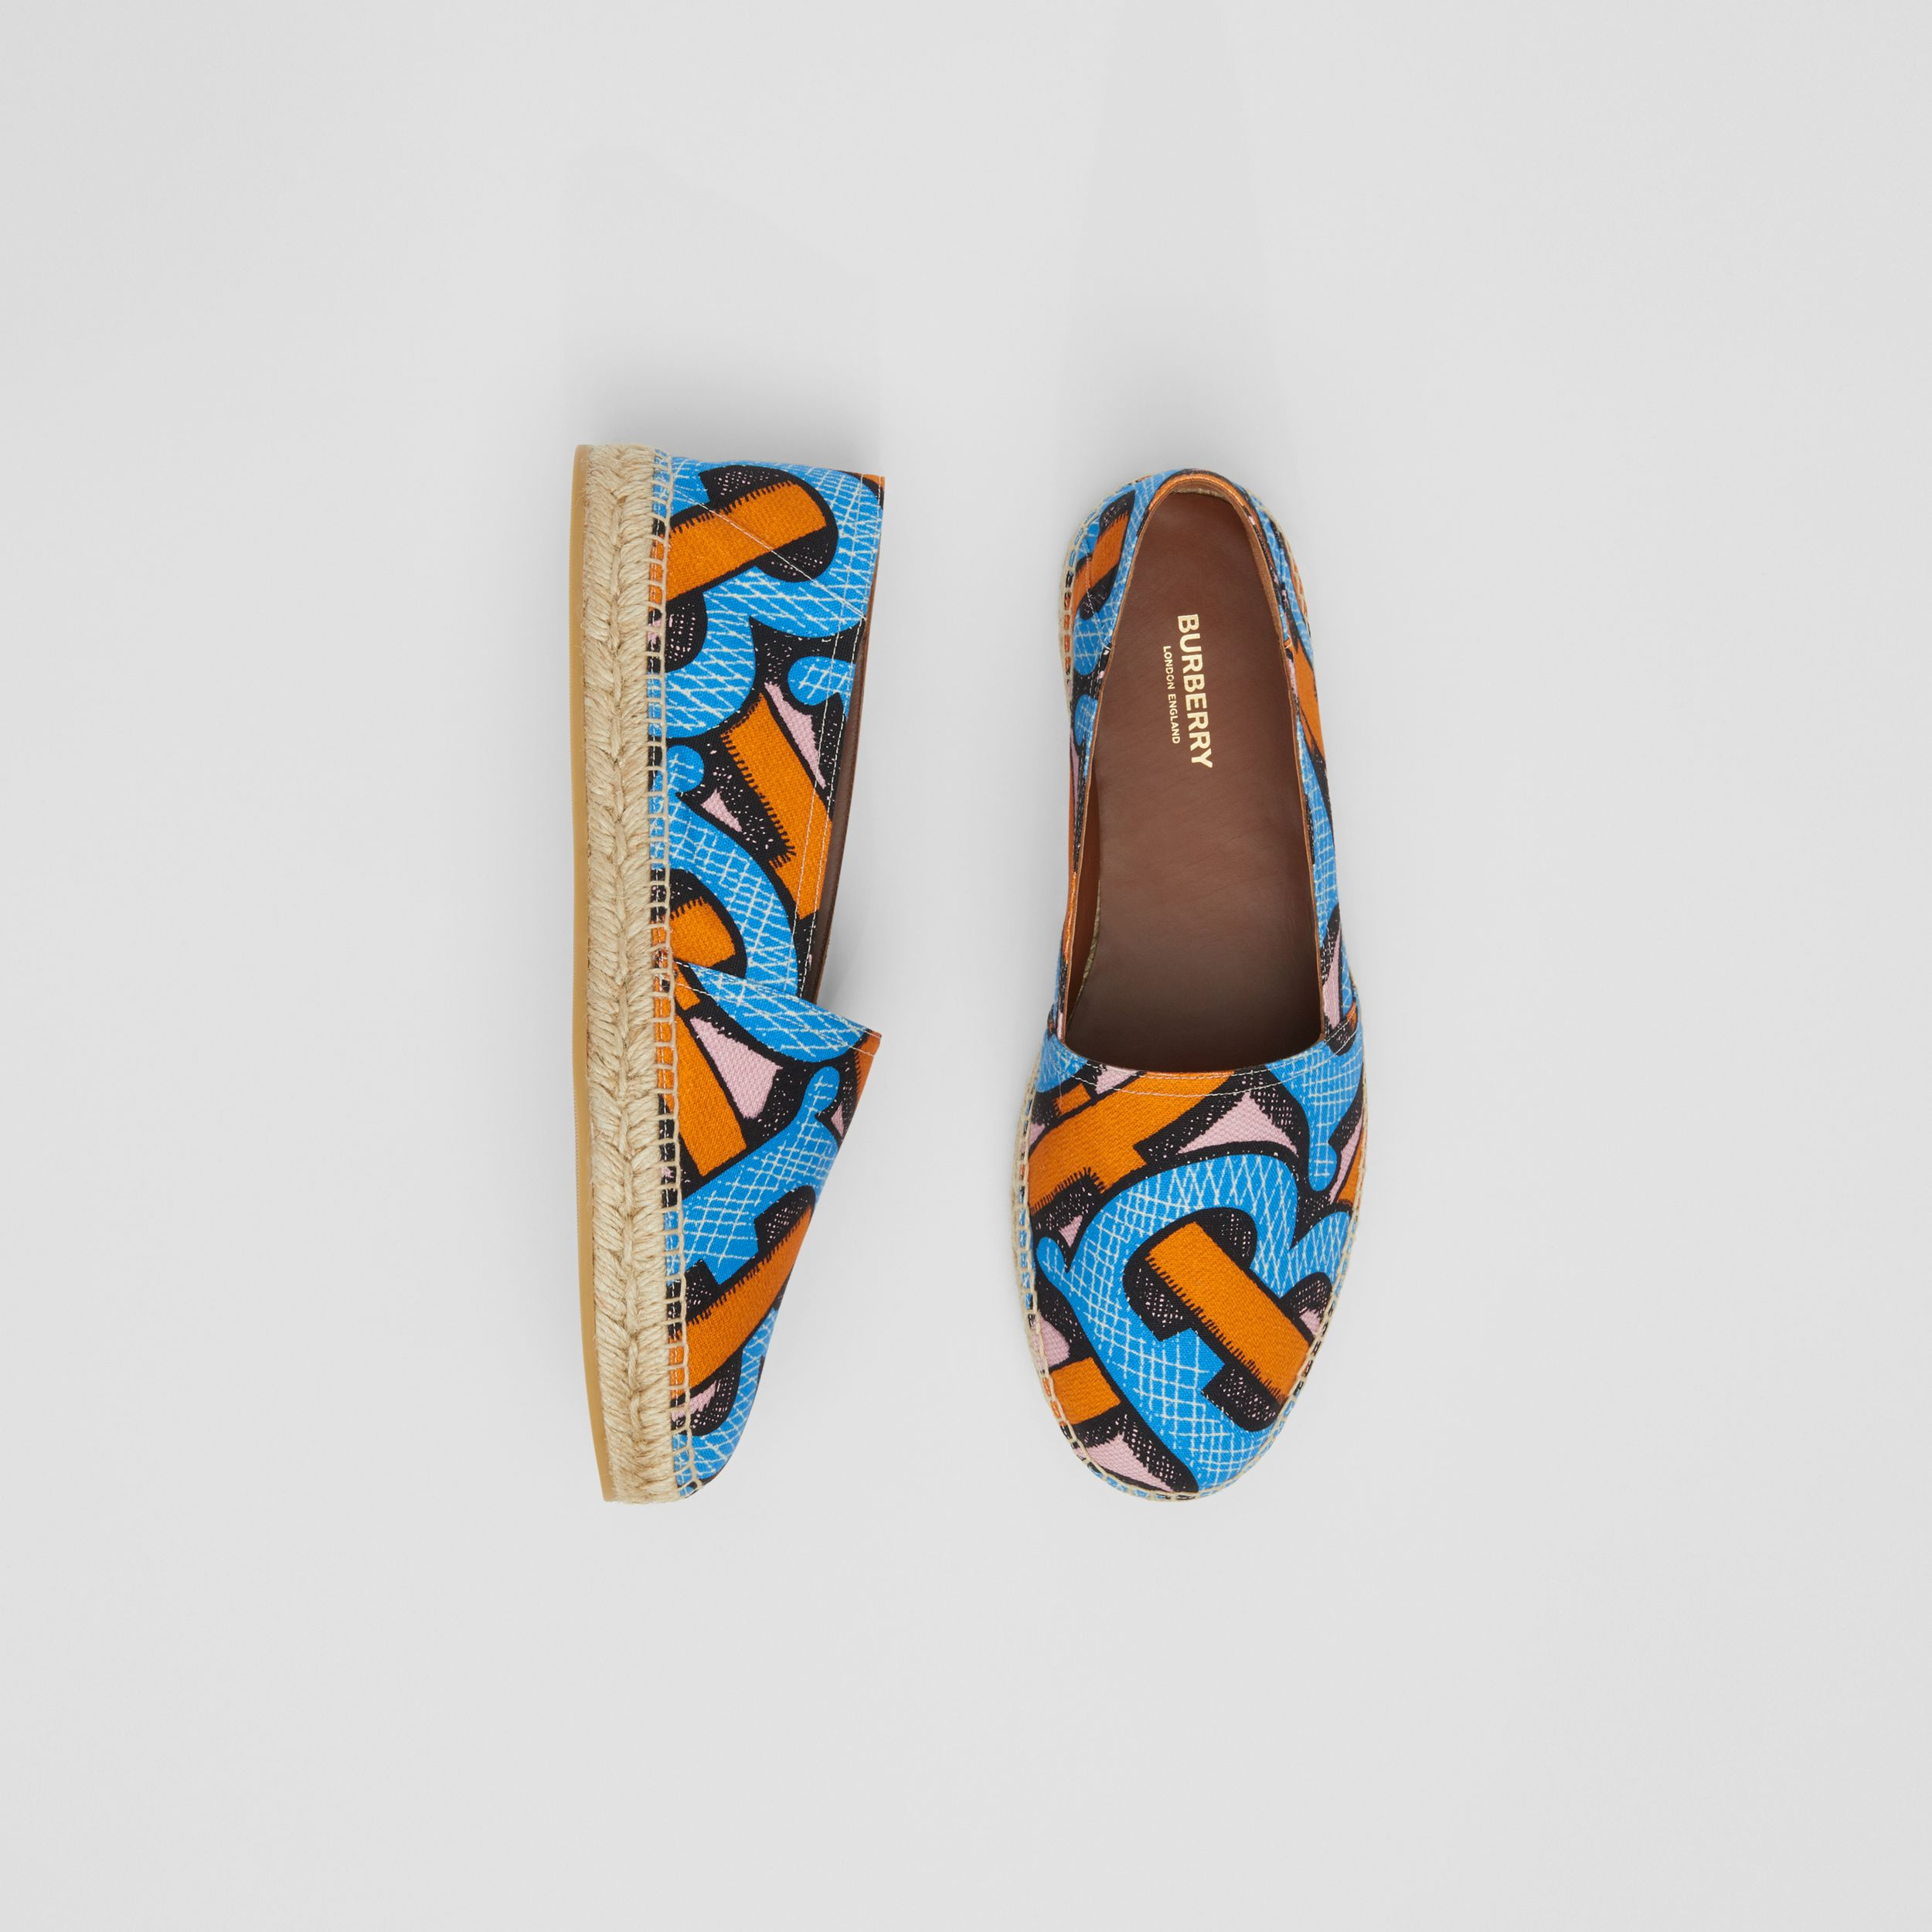 Monogram Print Cotton Canvas Espadrilles in Bright Cobalt - Men | Burberry - 1